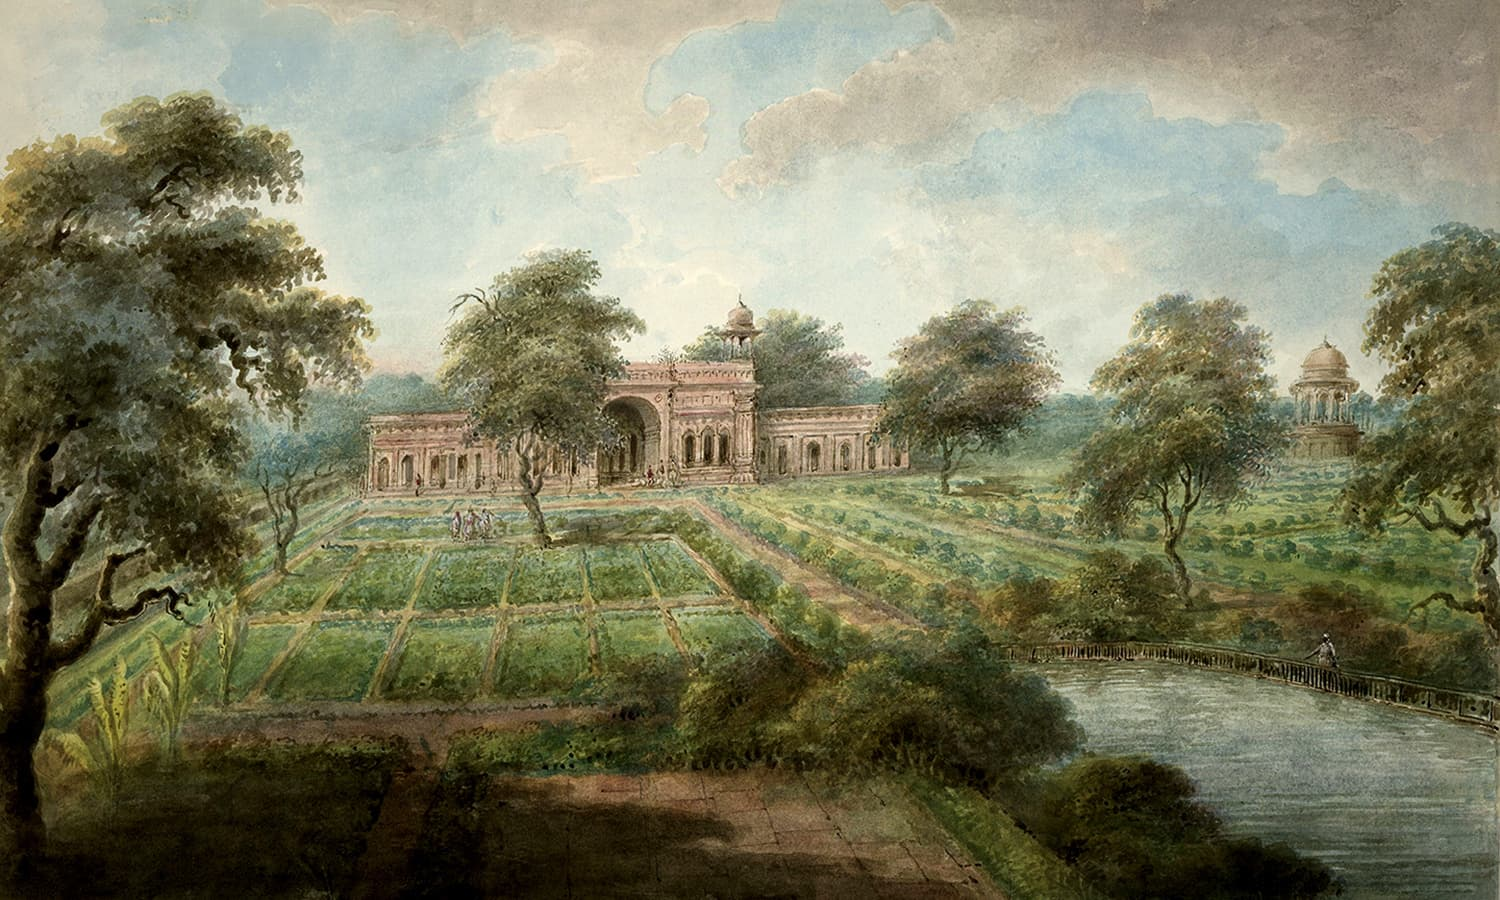 A 17th century painting of the Shalimar Garden.